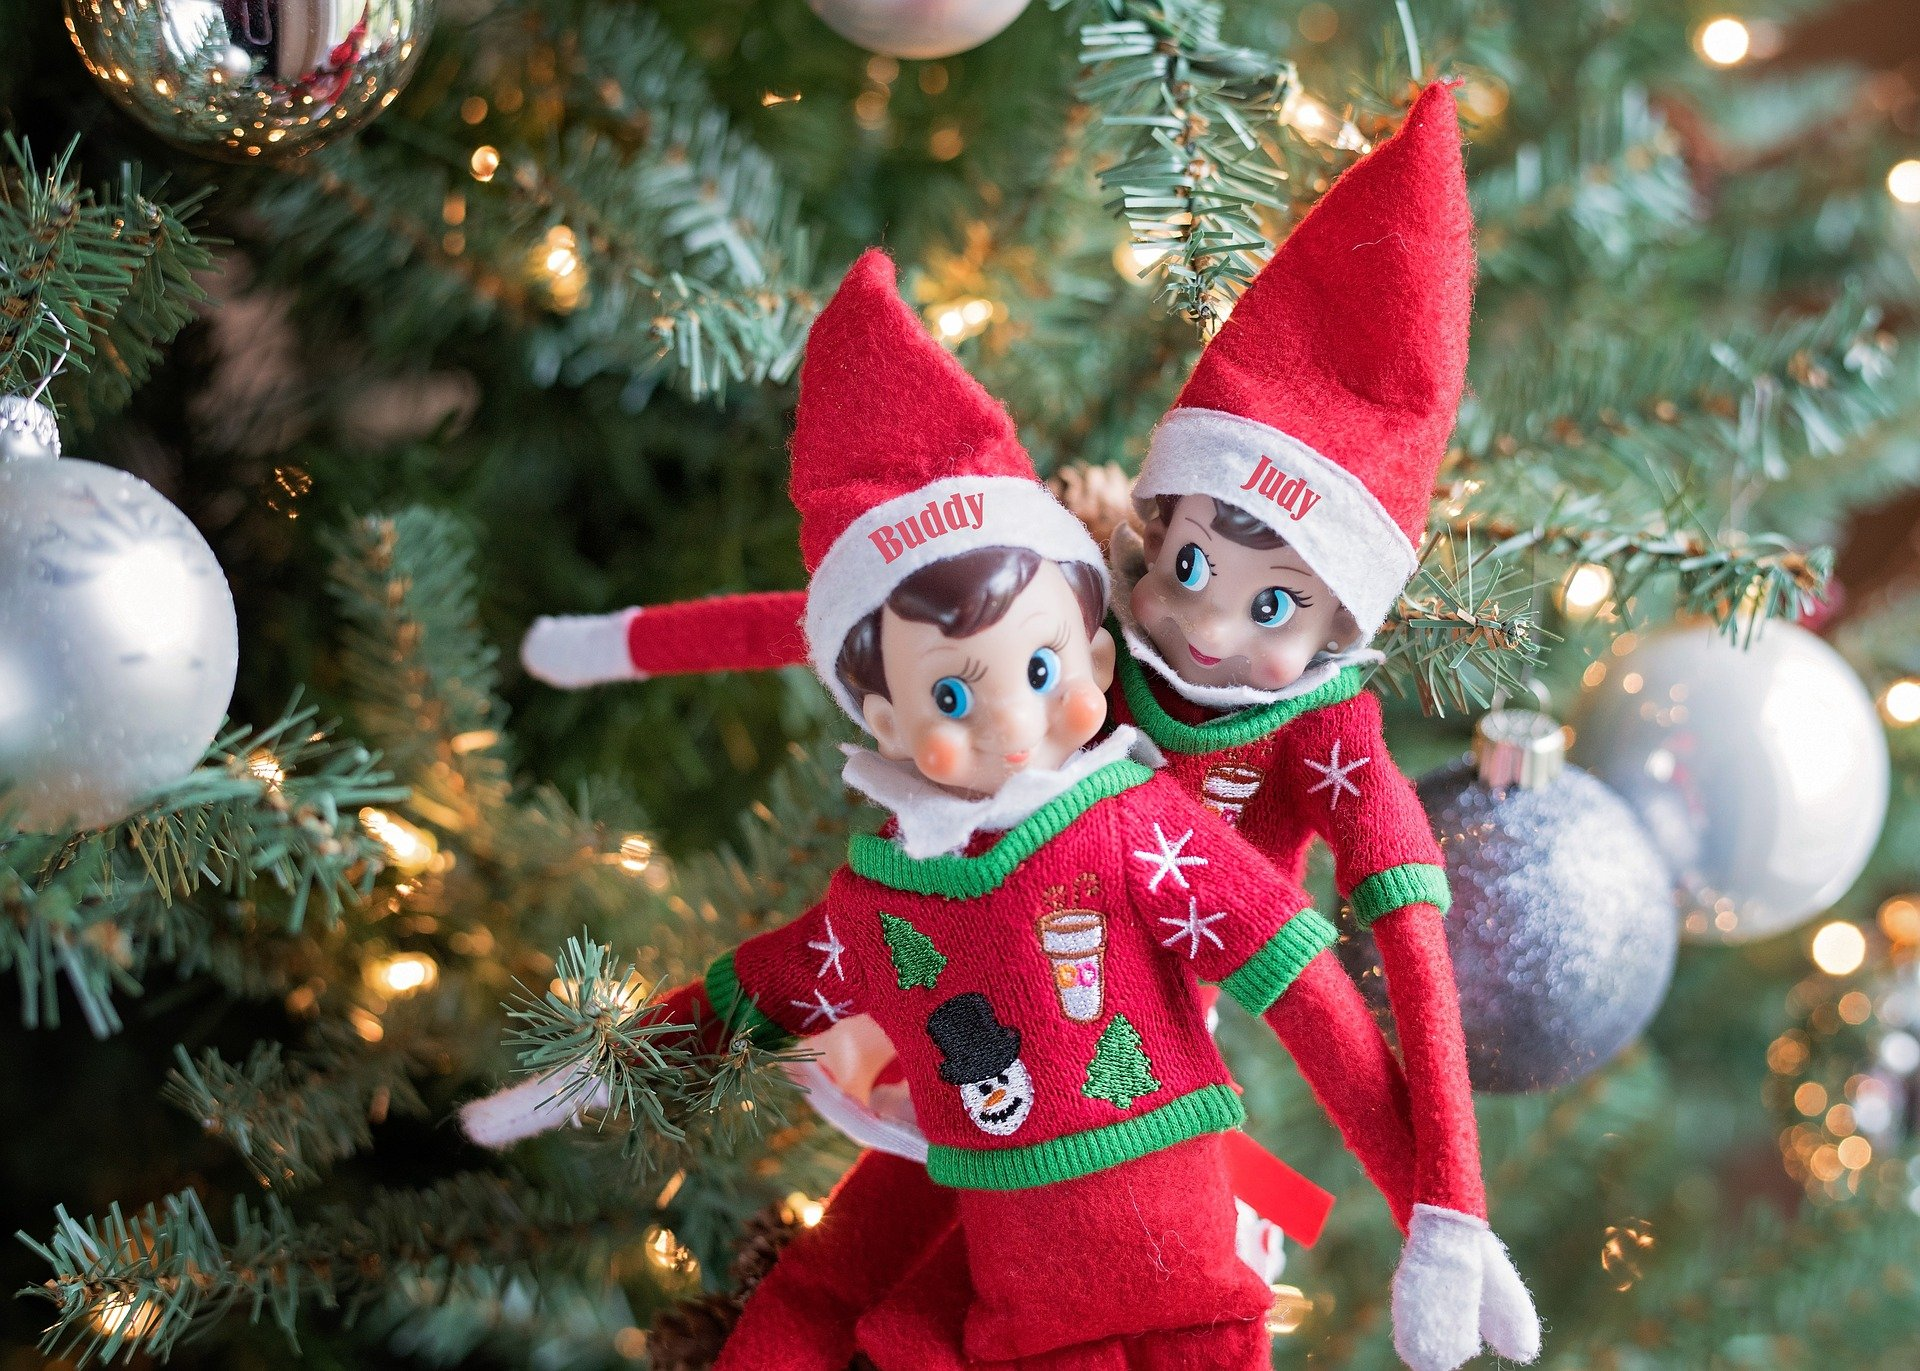 2 toy elves on a tree